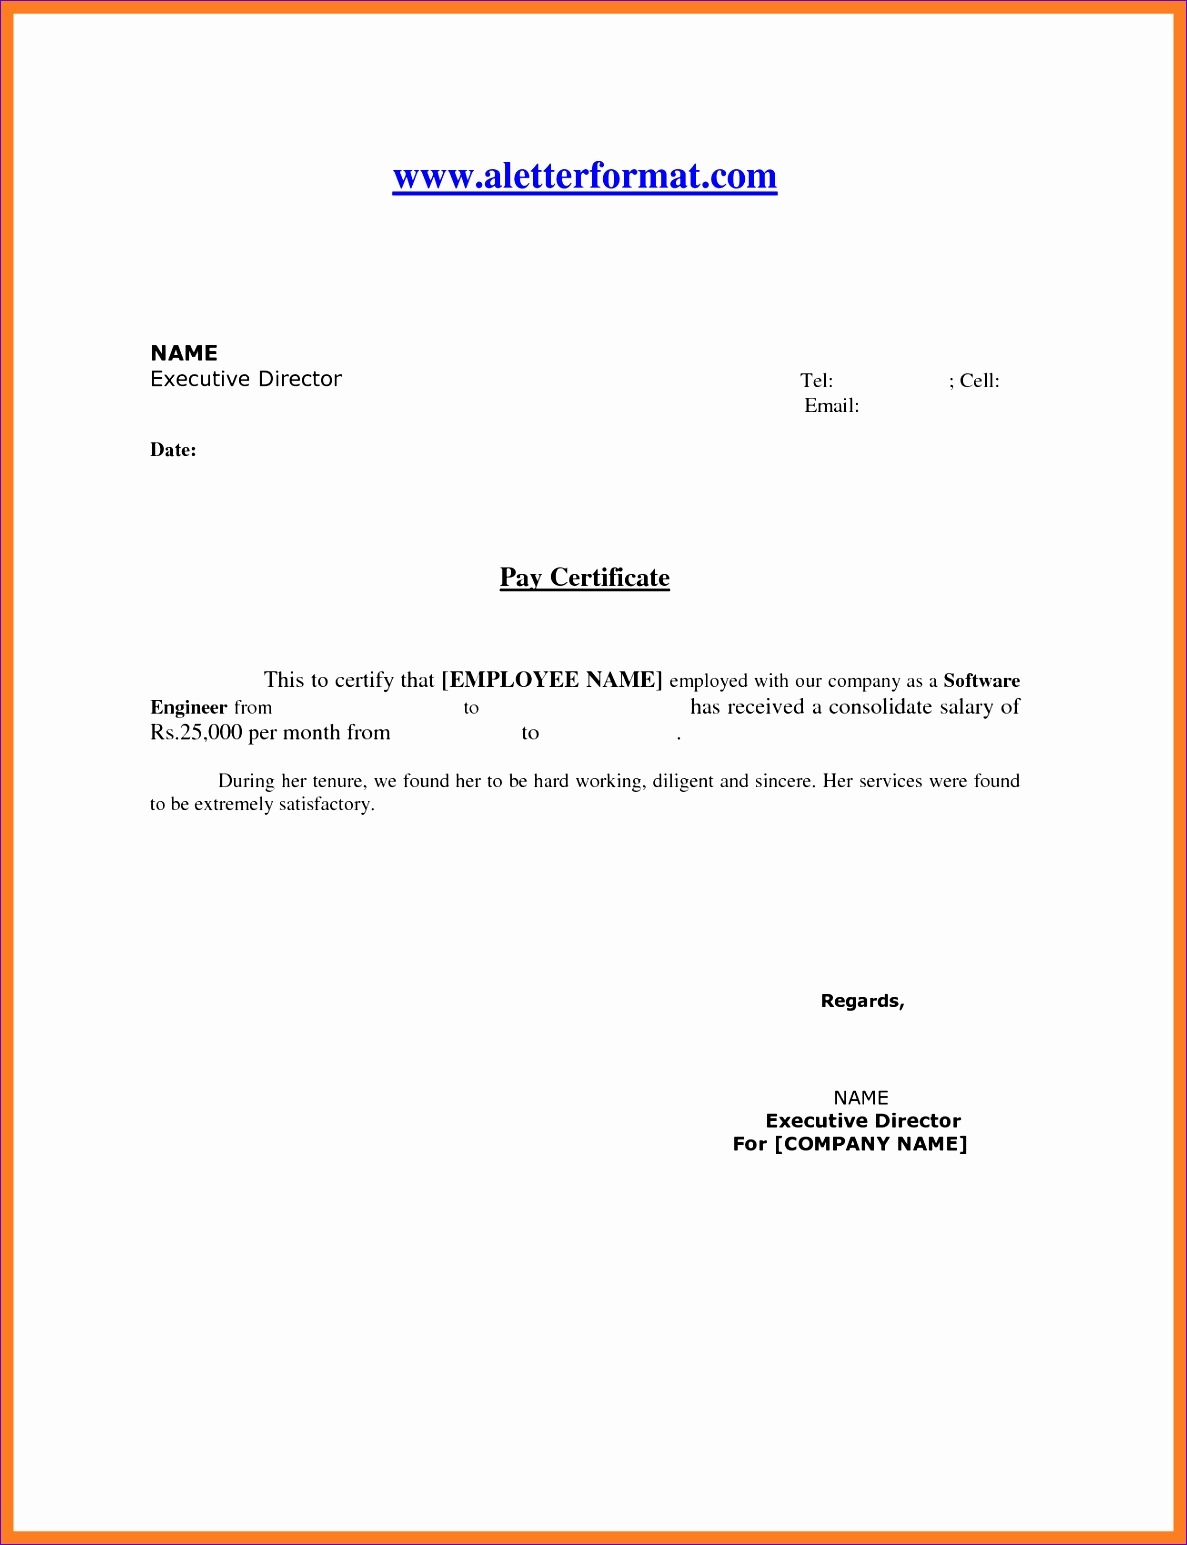 7 example of salary certificate 11871545